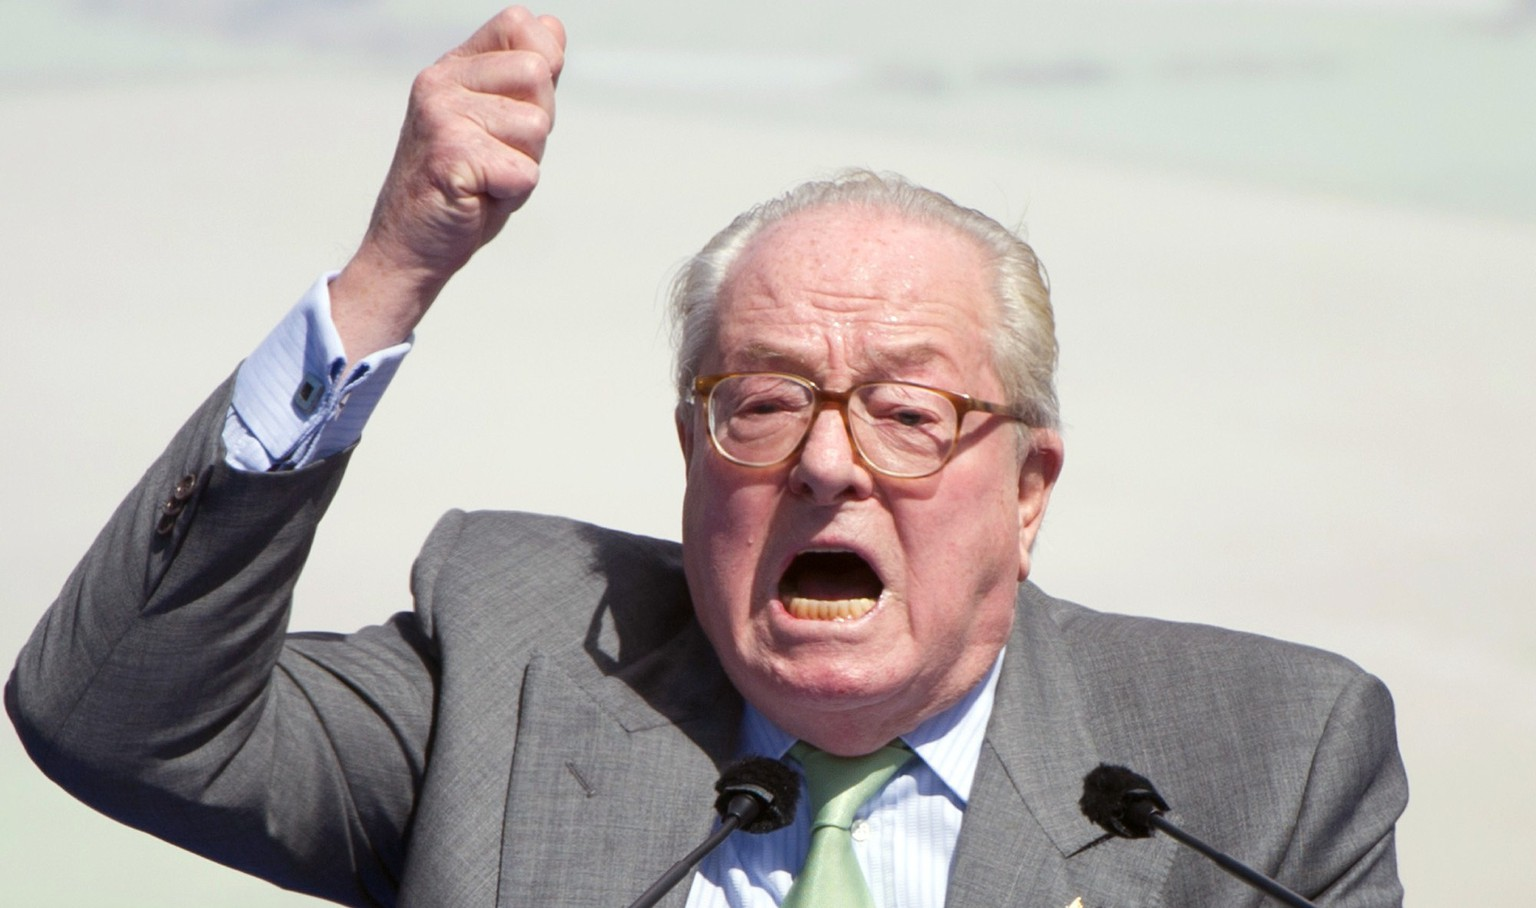 (FILES) - A photo taken on May 1, 2012 in Paris shows French far right party Front National (FN) honour president, Jean-Marie Le Pen delivering a speech as part of the FN's annual celebration. Anti-racism campaigners reacted with outrage on June 8, 2014 to an apparent anti-Semitic pun by France's former far-right leader Jean-Marie Le Pen that even his own party and daughter were quick to criticise. Le Pen, who has had multiple convictions for inciting racial hatred and denying crimes against humanity, once described Nazi gas chambers as a